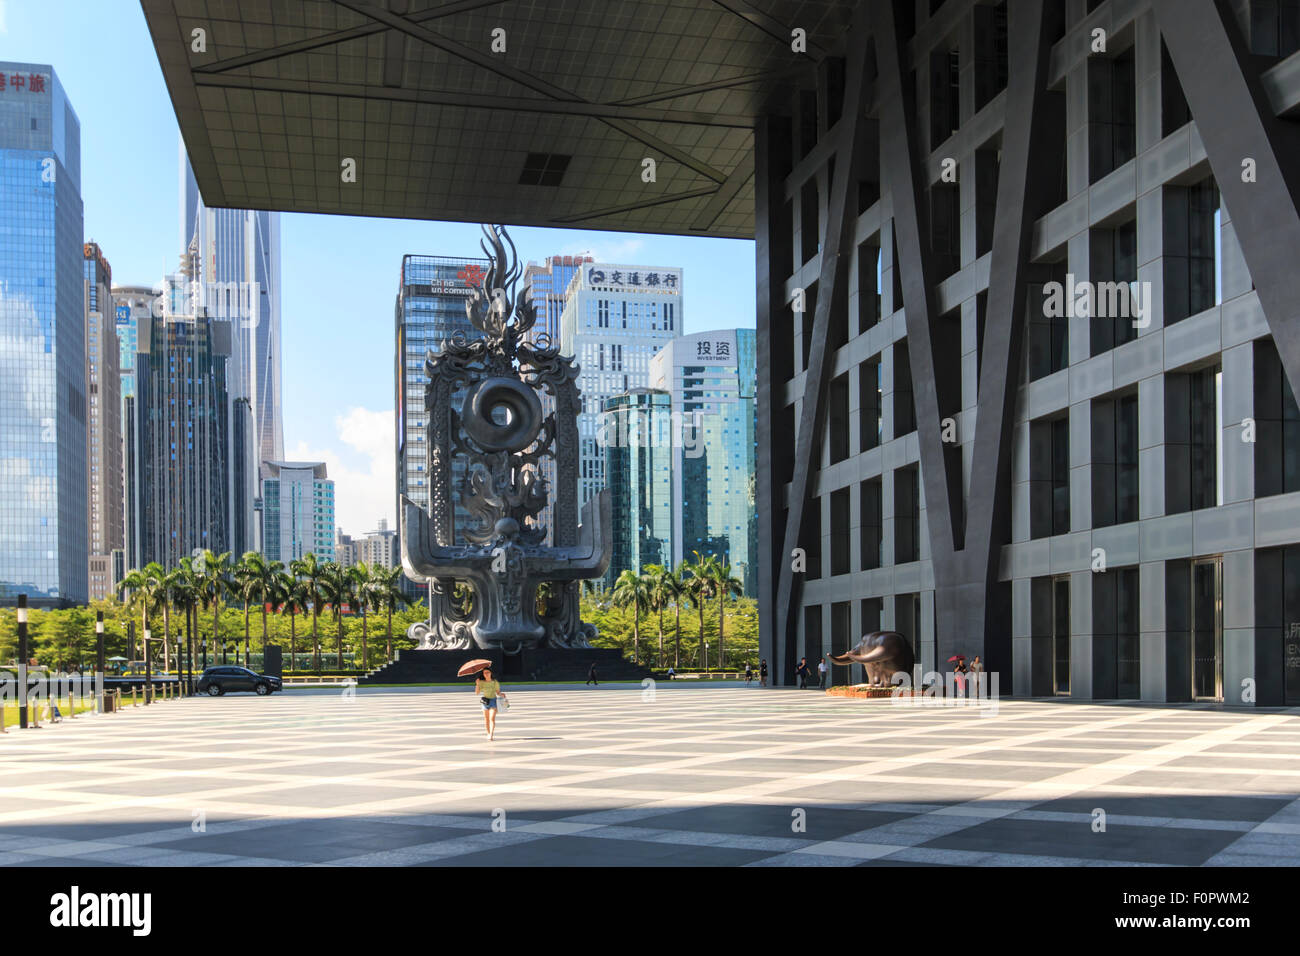 Shenzhen, China - August 19,2015: Stock market building in Shenzhen, one of the three stock markets in China. - Stock Image